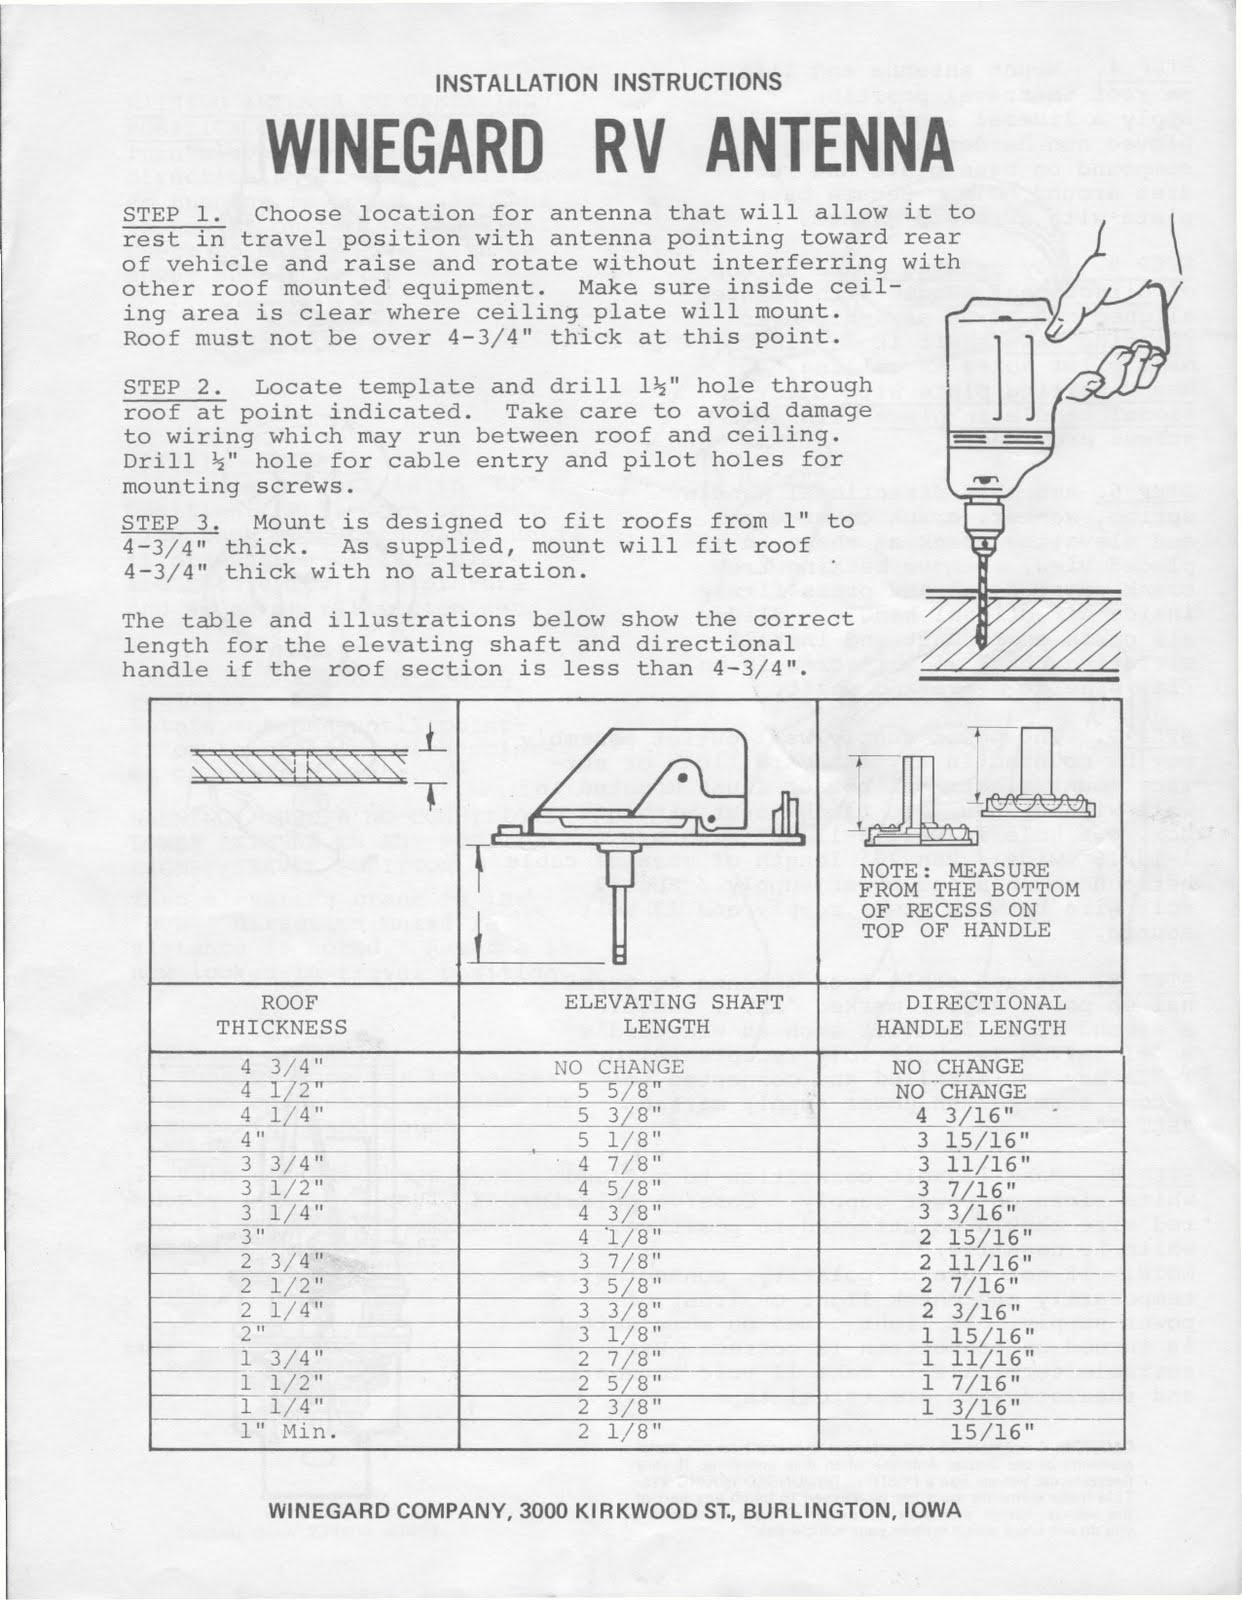 shurflo rv water pump wiring diagram viper 5904 installation 1983 fleetwood pace arrow owners manuals: winegard tv antenna and operation manual